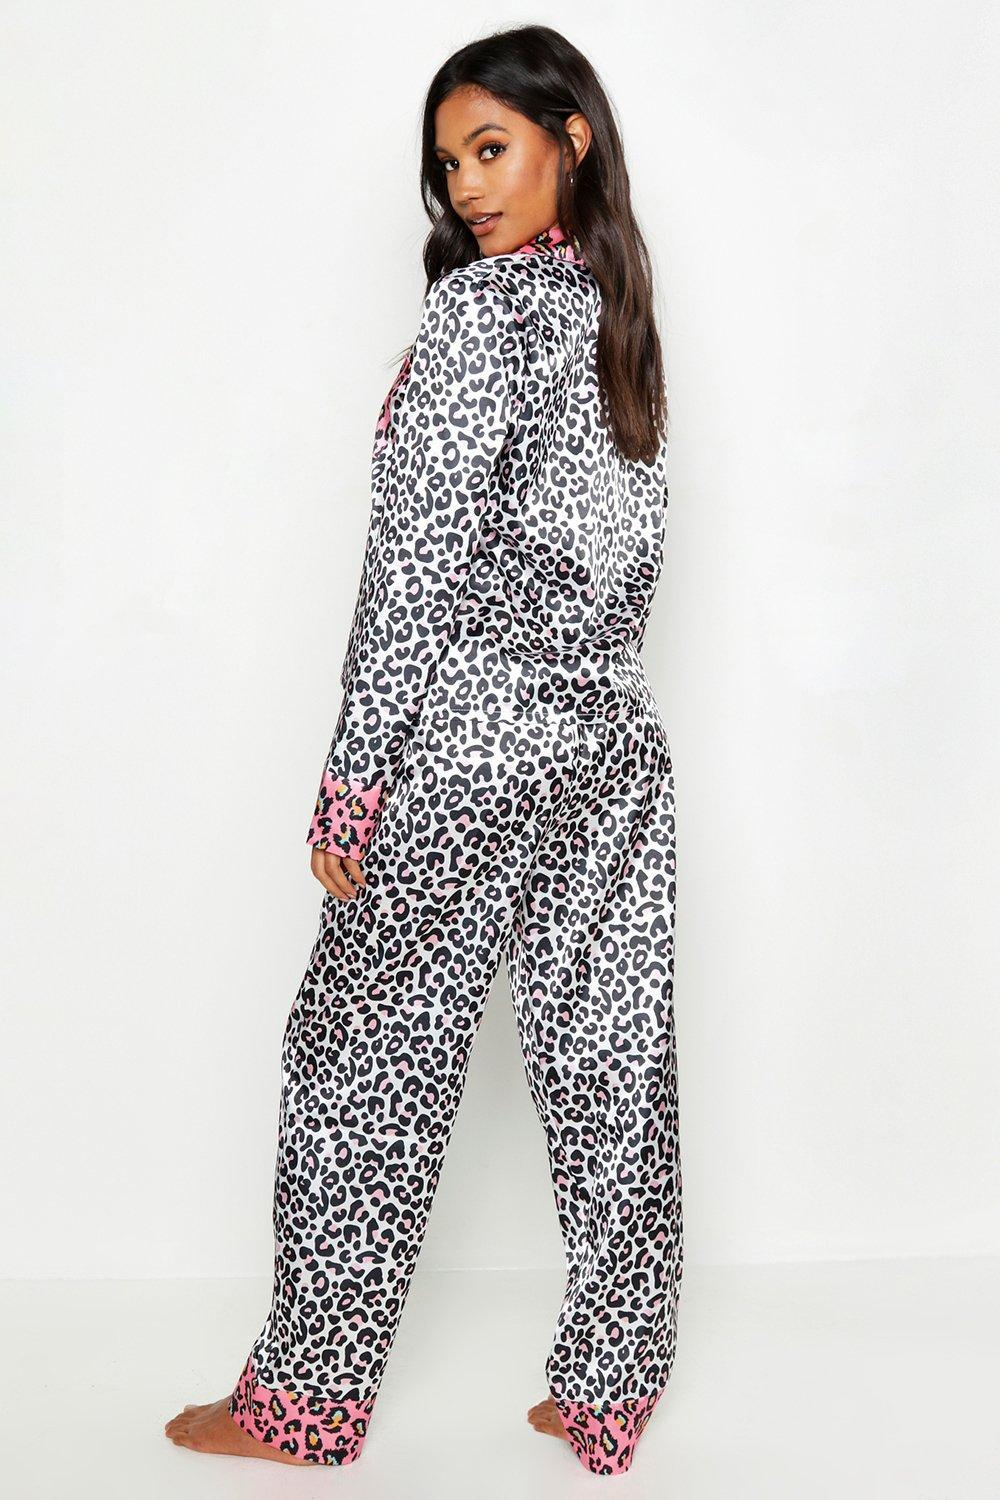 cd1abfcc42 Lyst - Boohoo Contrast Leopard Satin Pj Set in Black